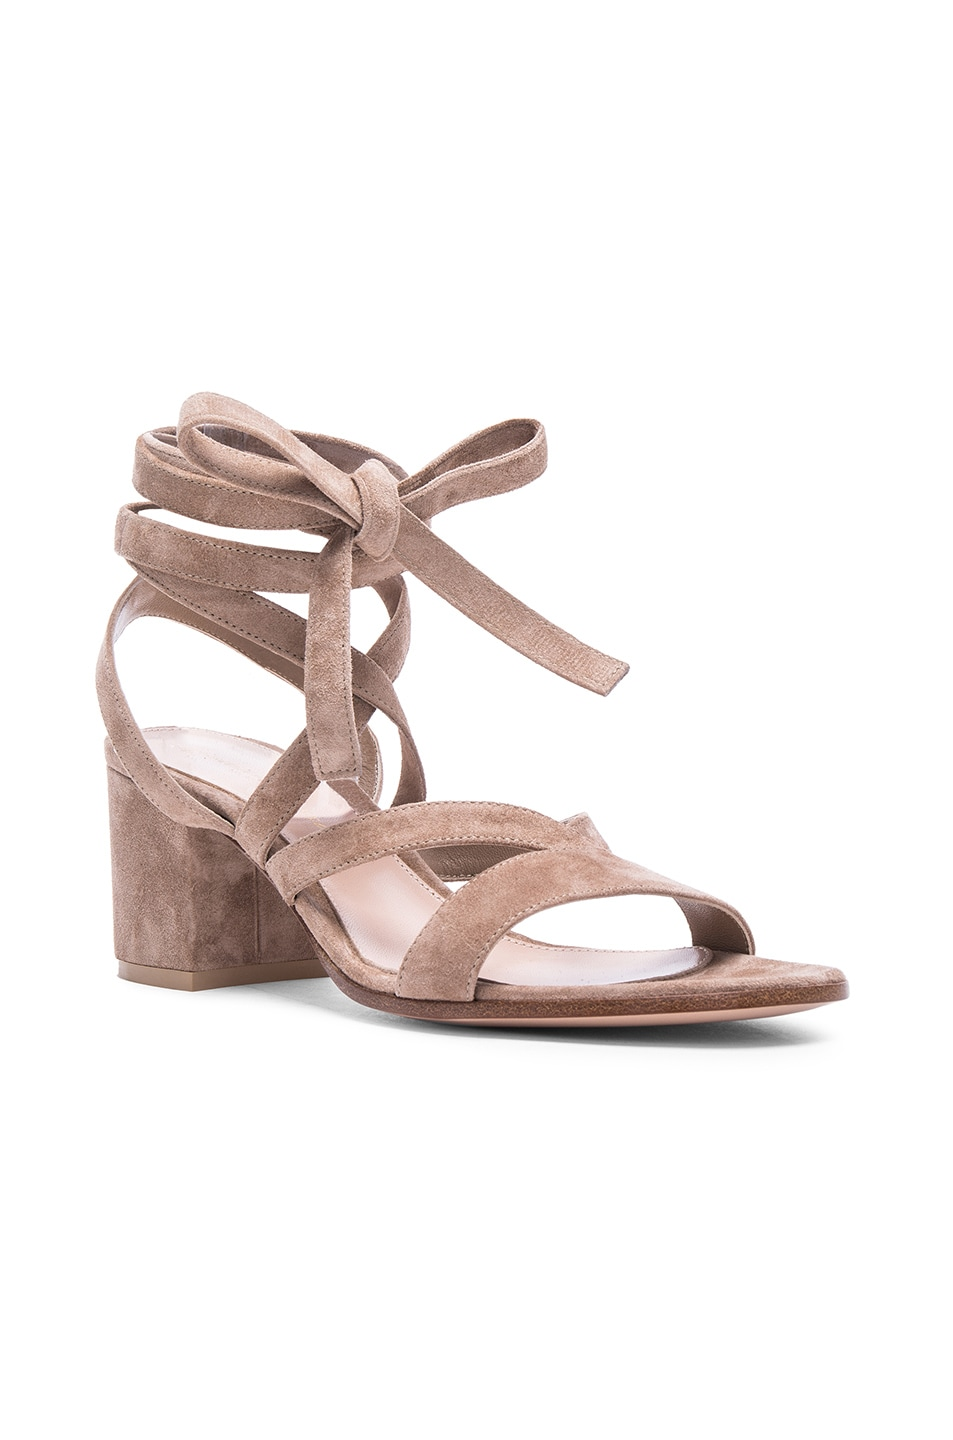 Image 2 of Gianvito Rossi Suede Janis Low Sandals in Bisque